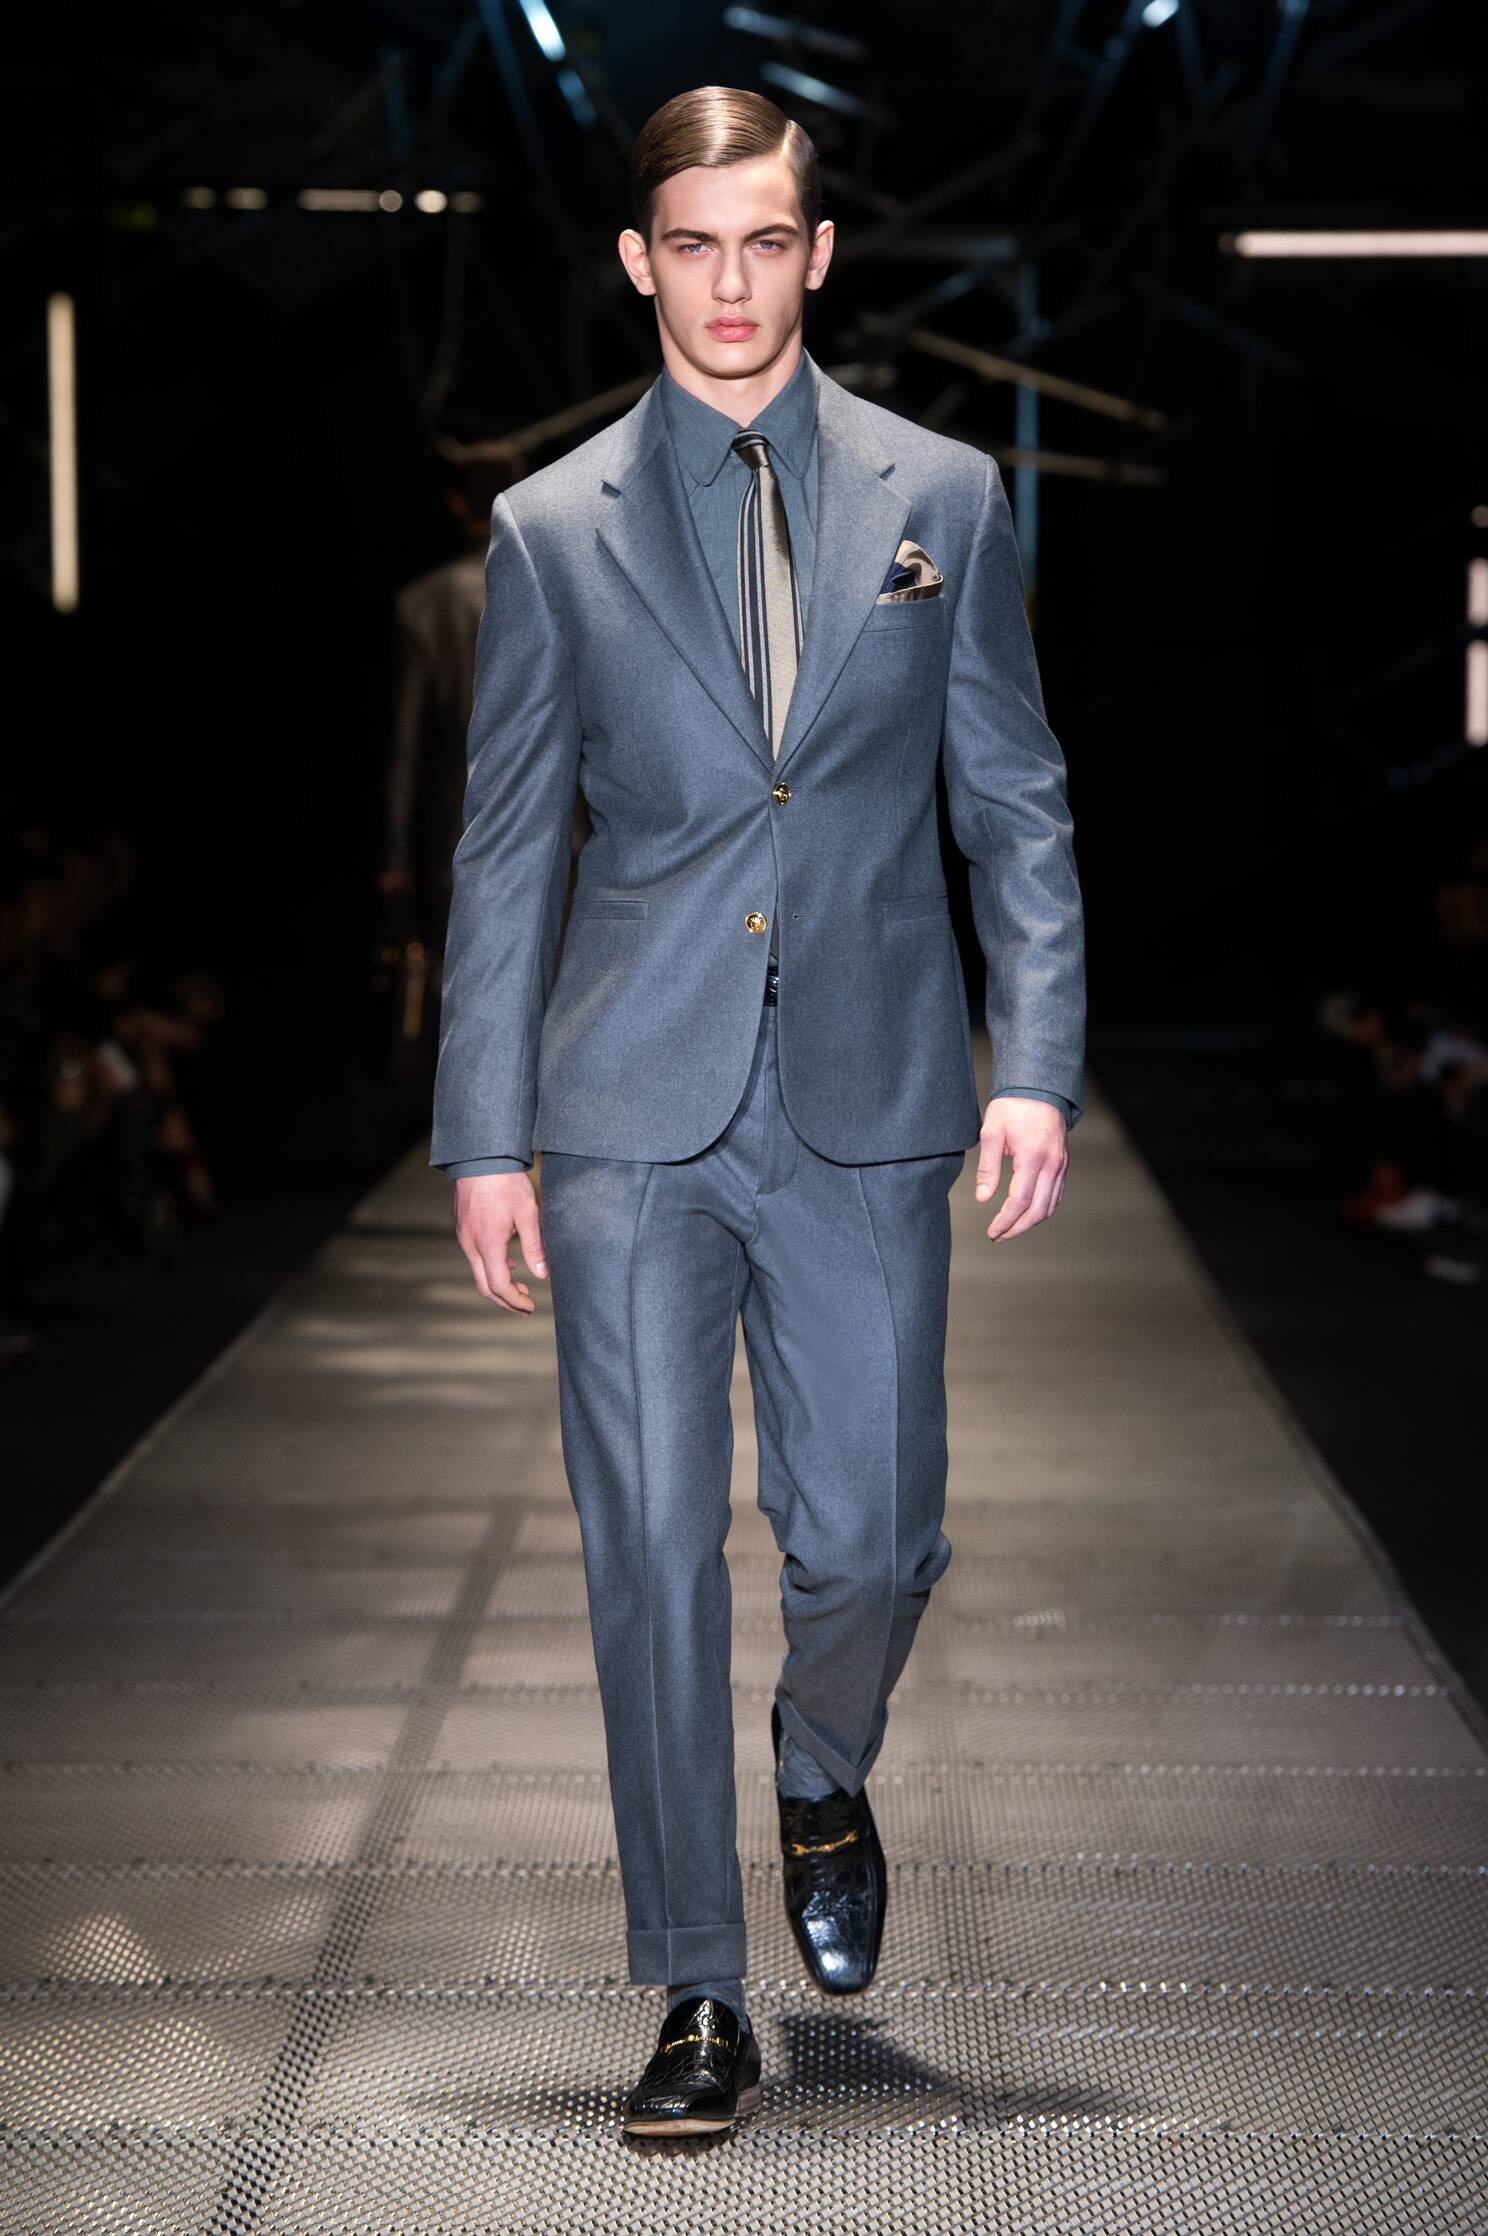 Fall Fashion Man Italian Suit Versace